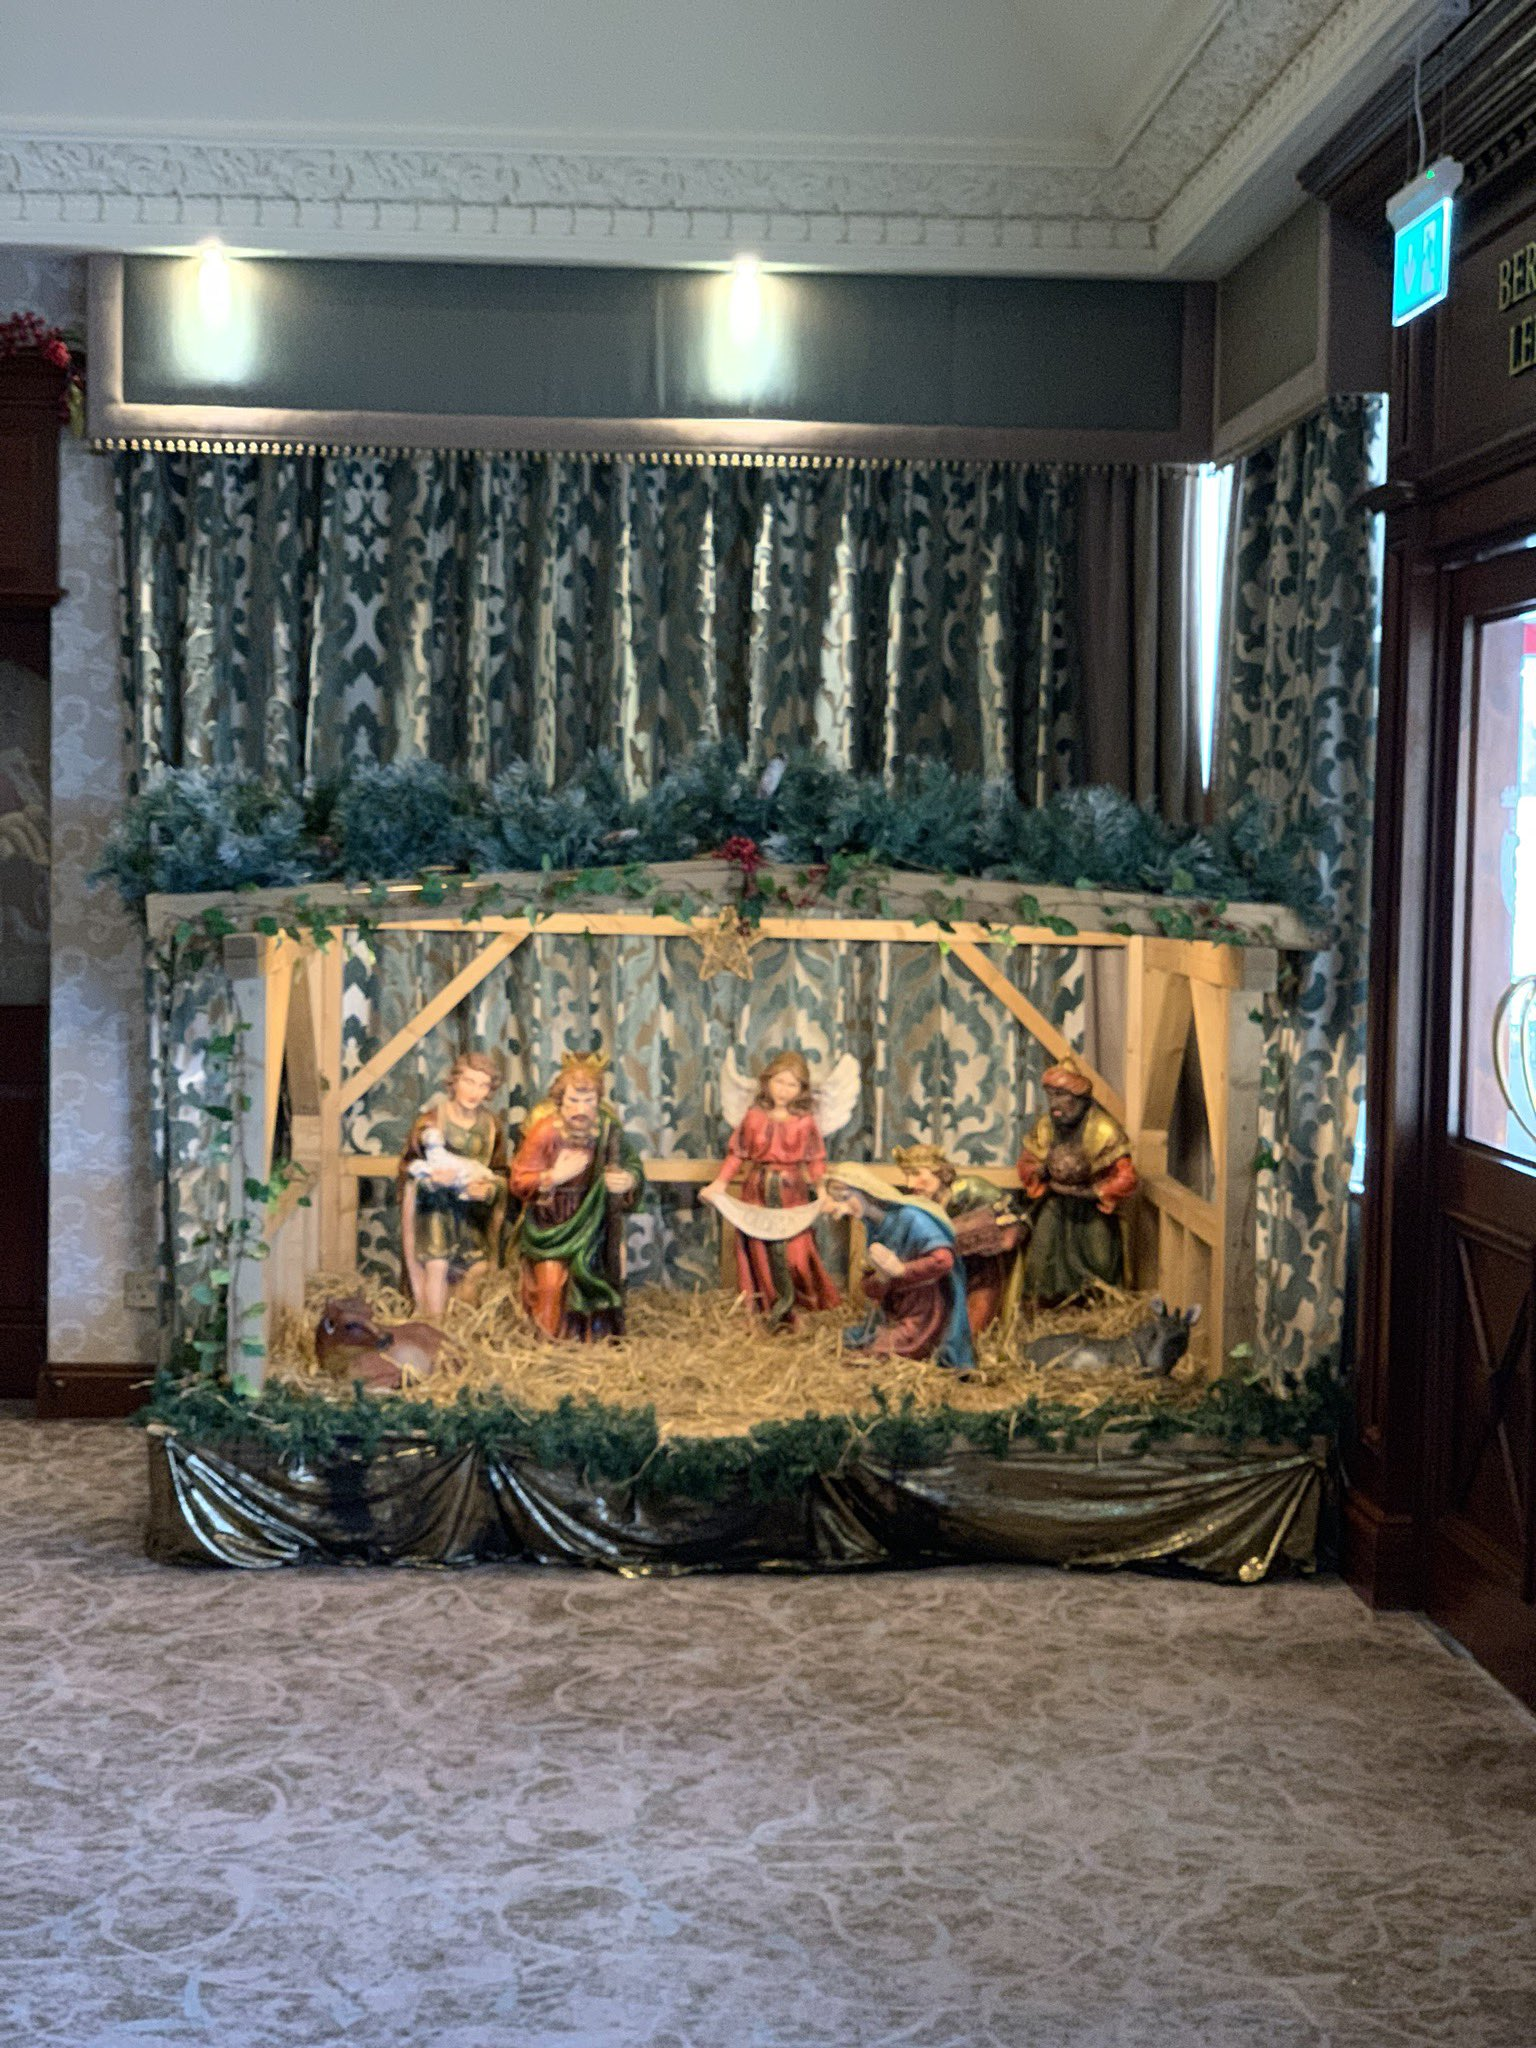 Eamonn Mallie On Twitter Christmas Crib A Christmas Crib Is A Rare Presence In A Hotel Foyer In This Materialistic World Enjoy A Moment Of Repose Courtesy Of John And Paddy Mcparland Carrickdalehote Https T Co F2pbrqgydf